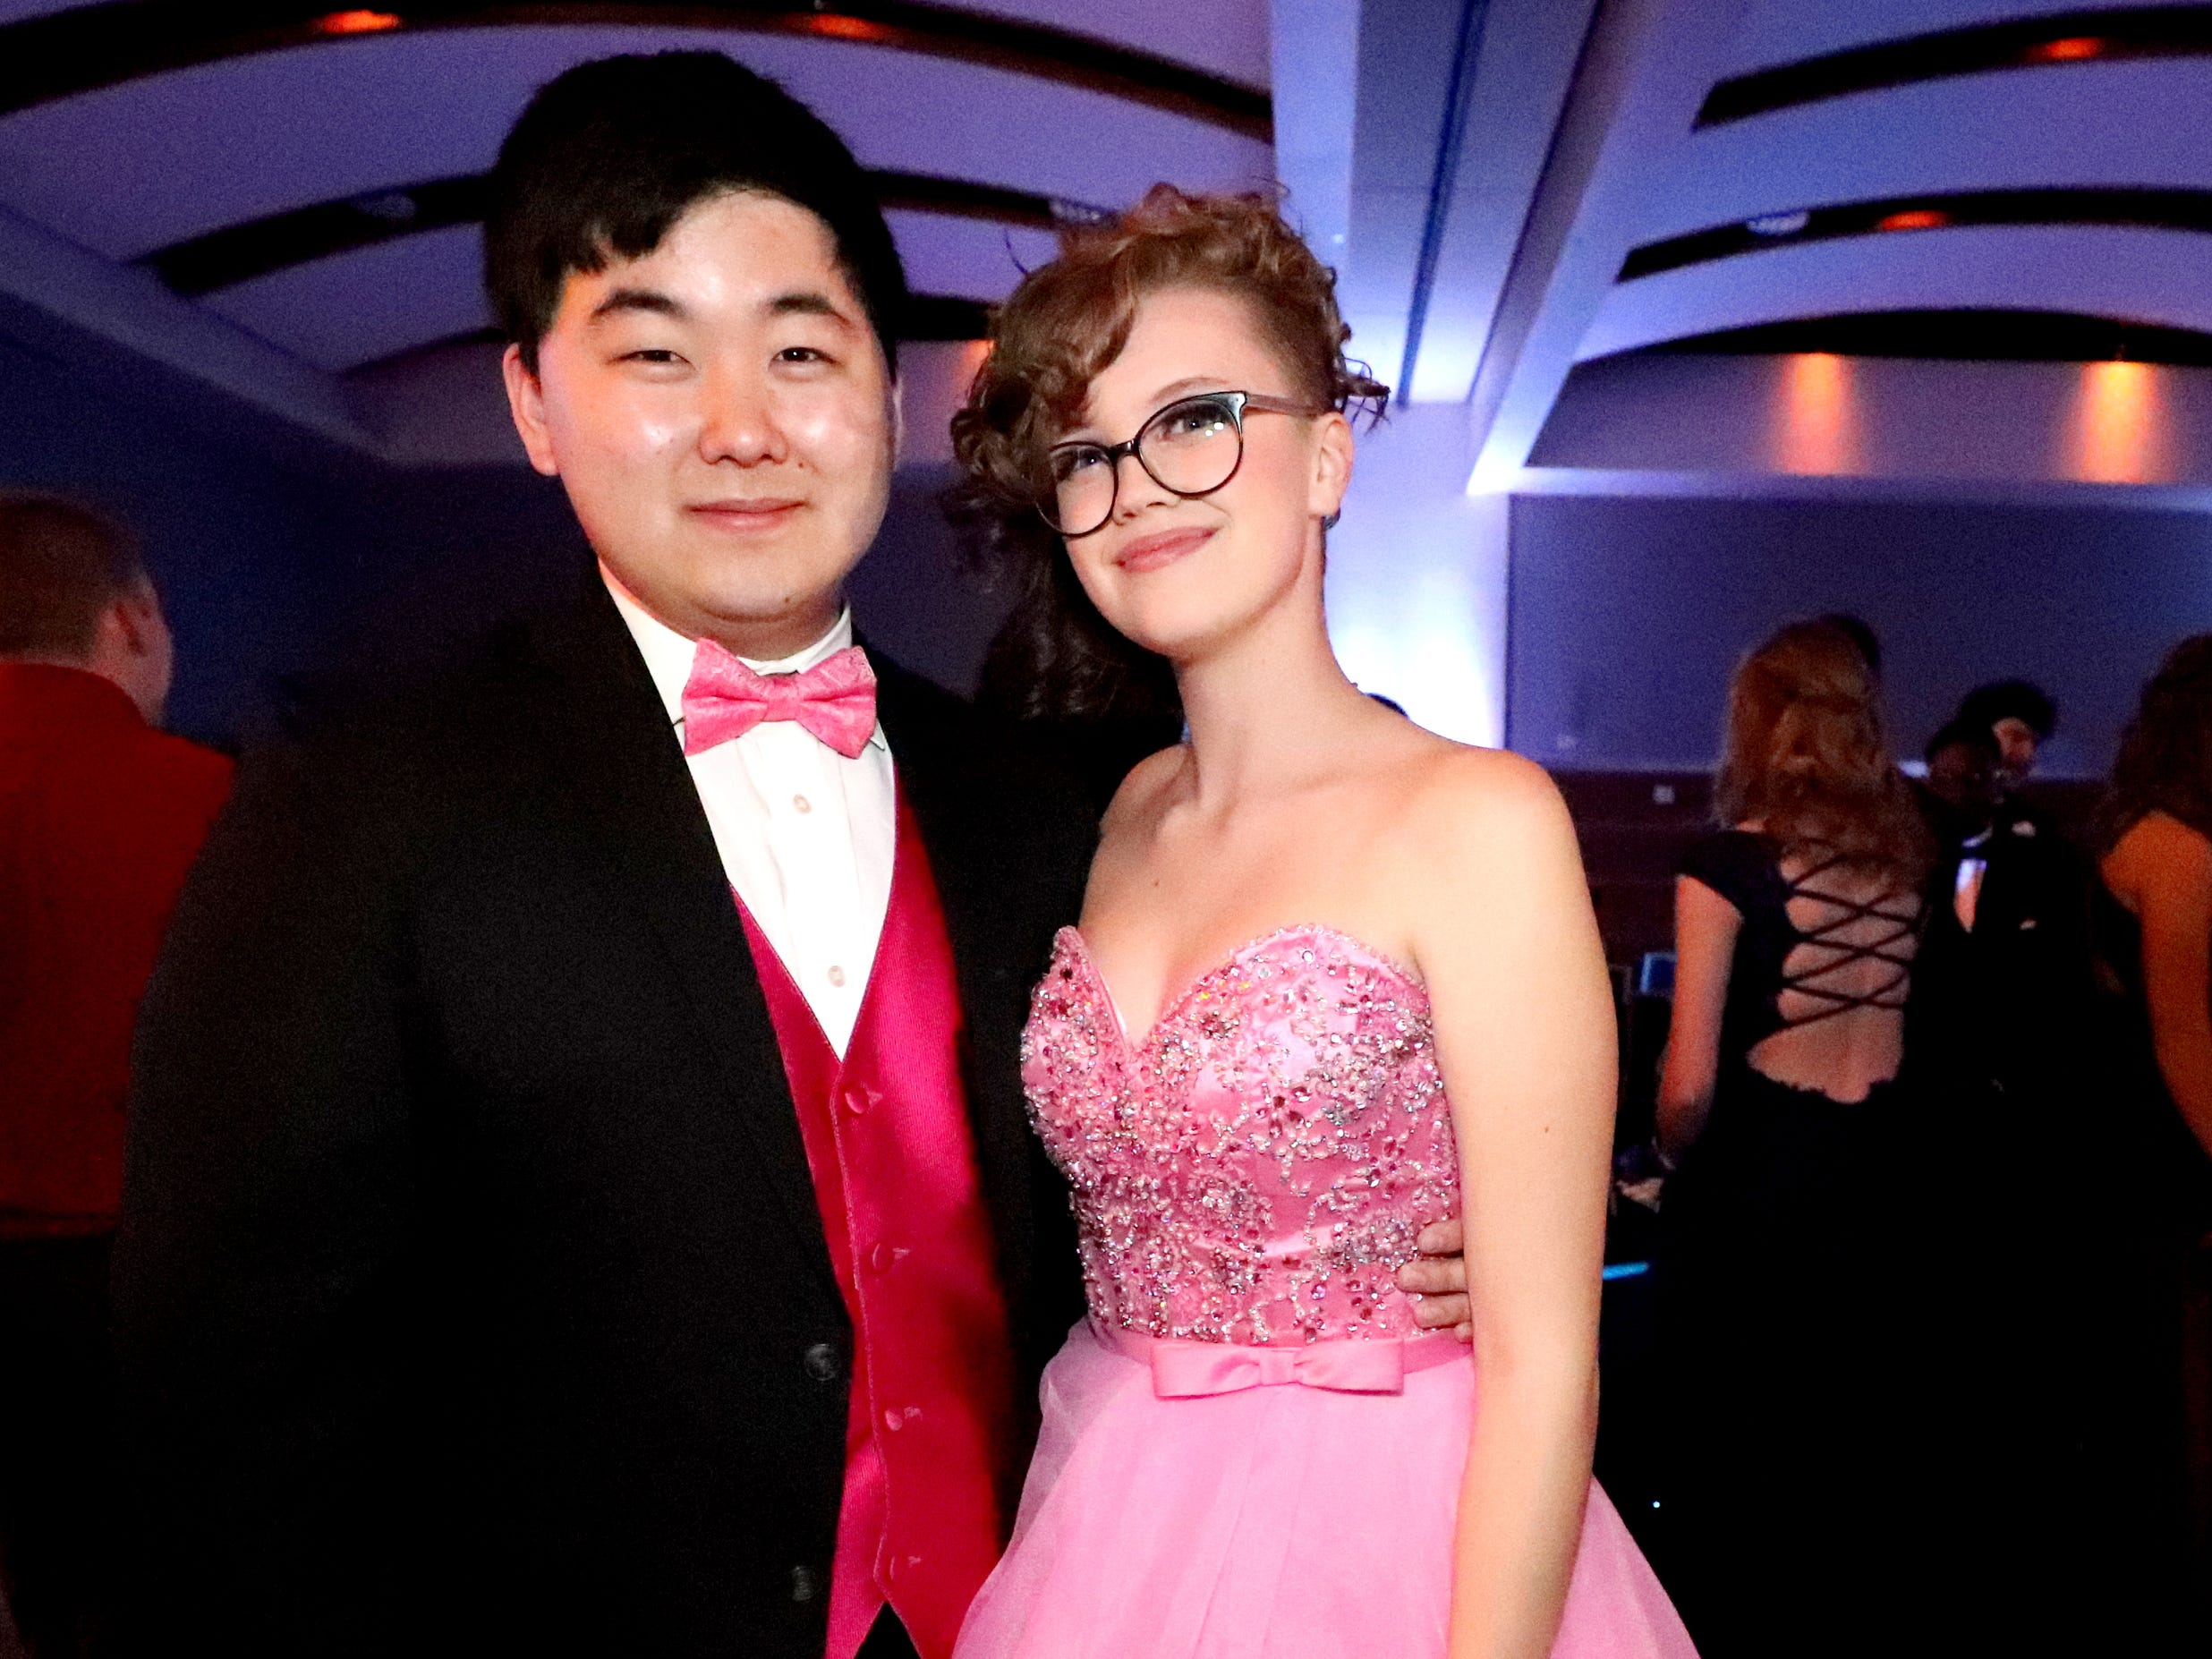 Ji Wan Son, left and Rachel Shores, right at Blackman's prom on Friday April 12, 2019, at MTSU.